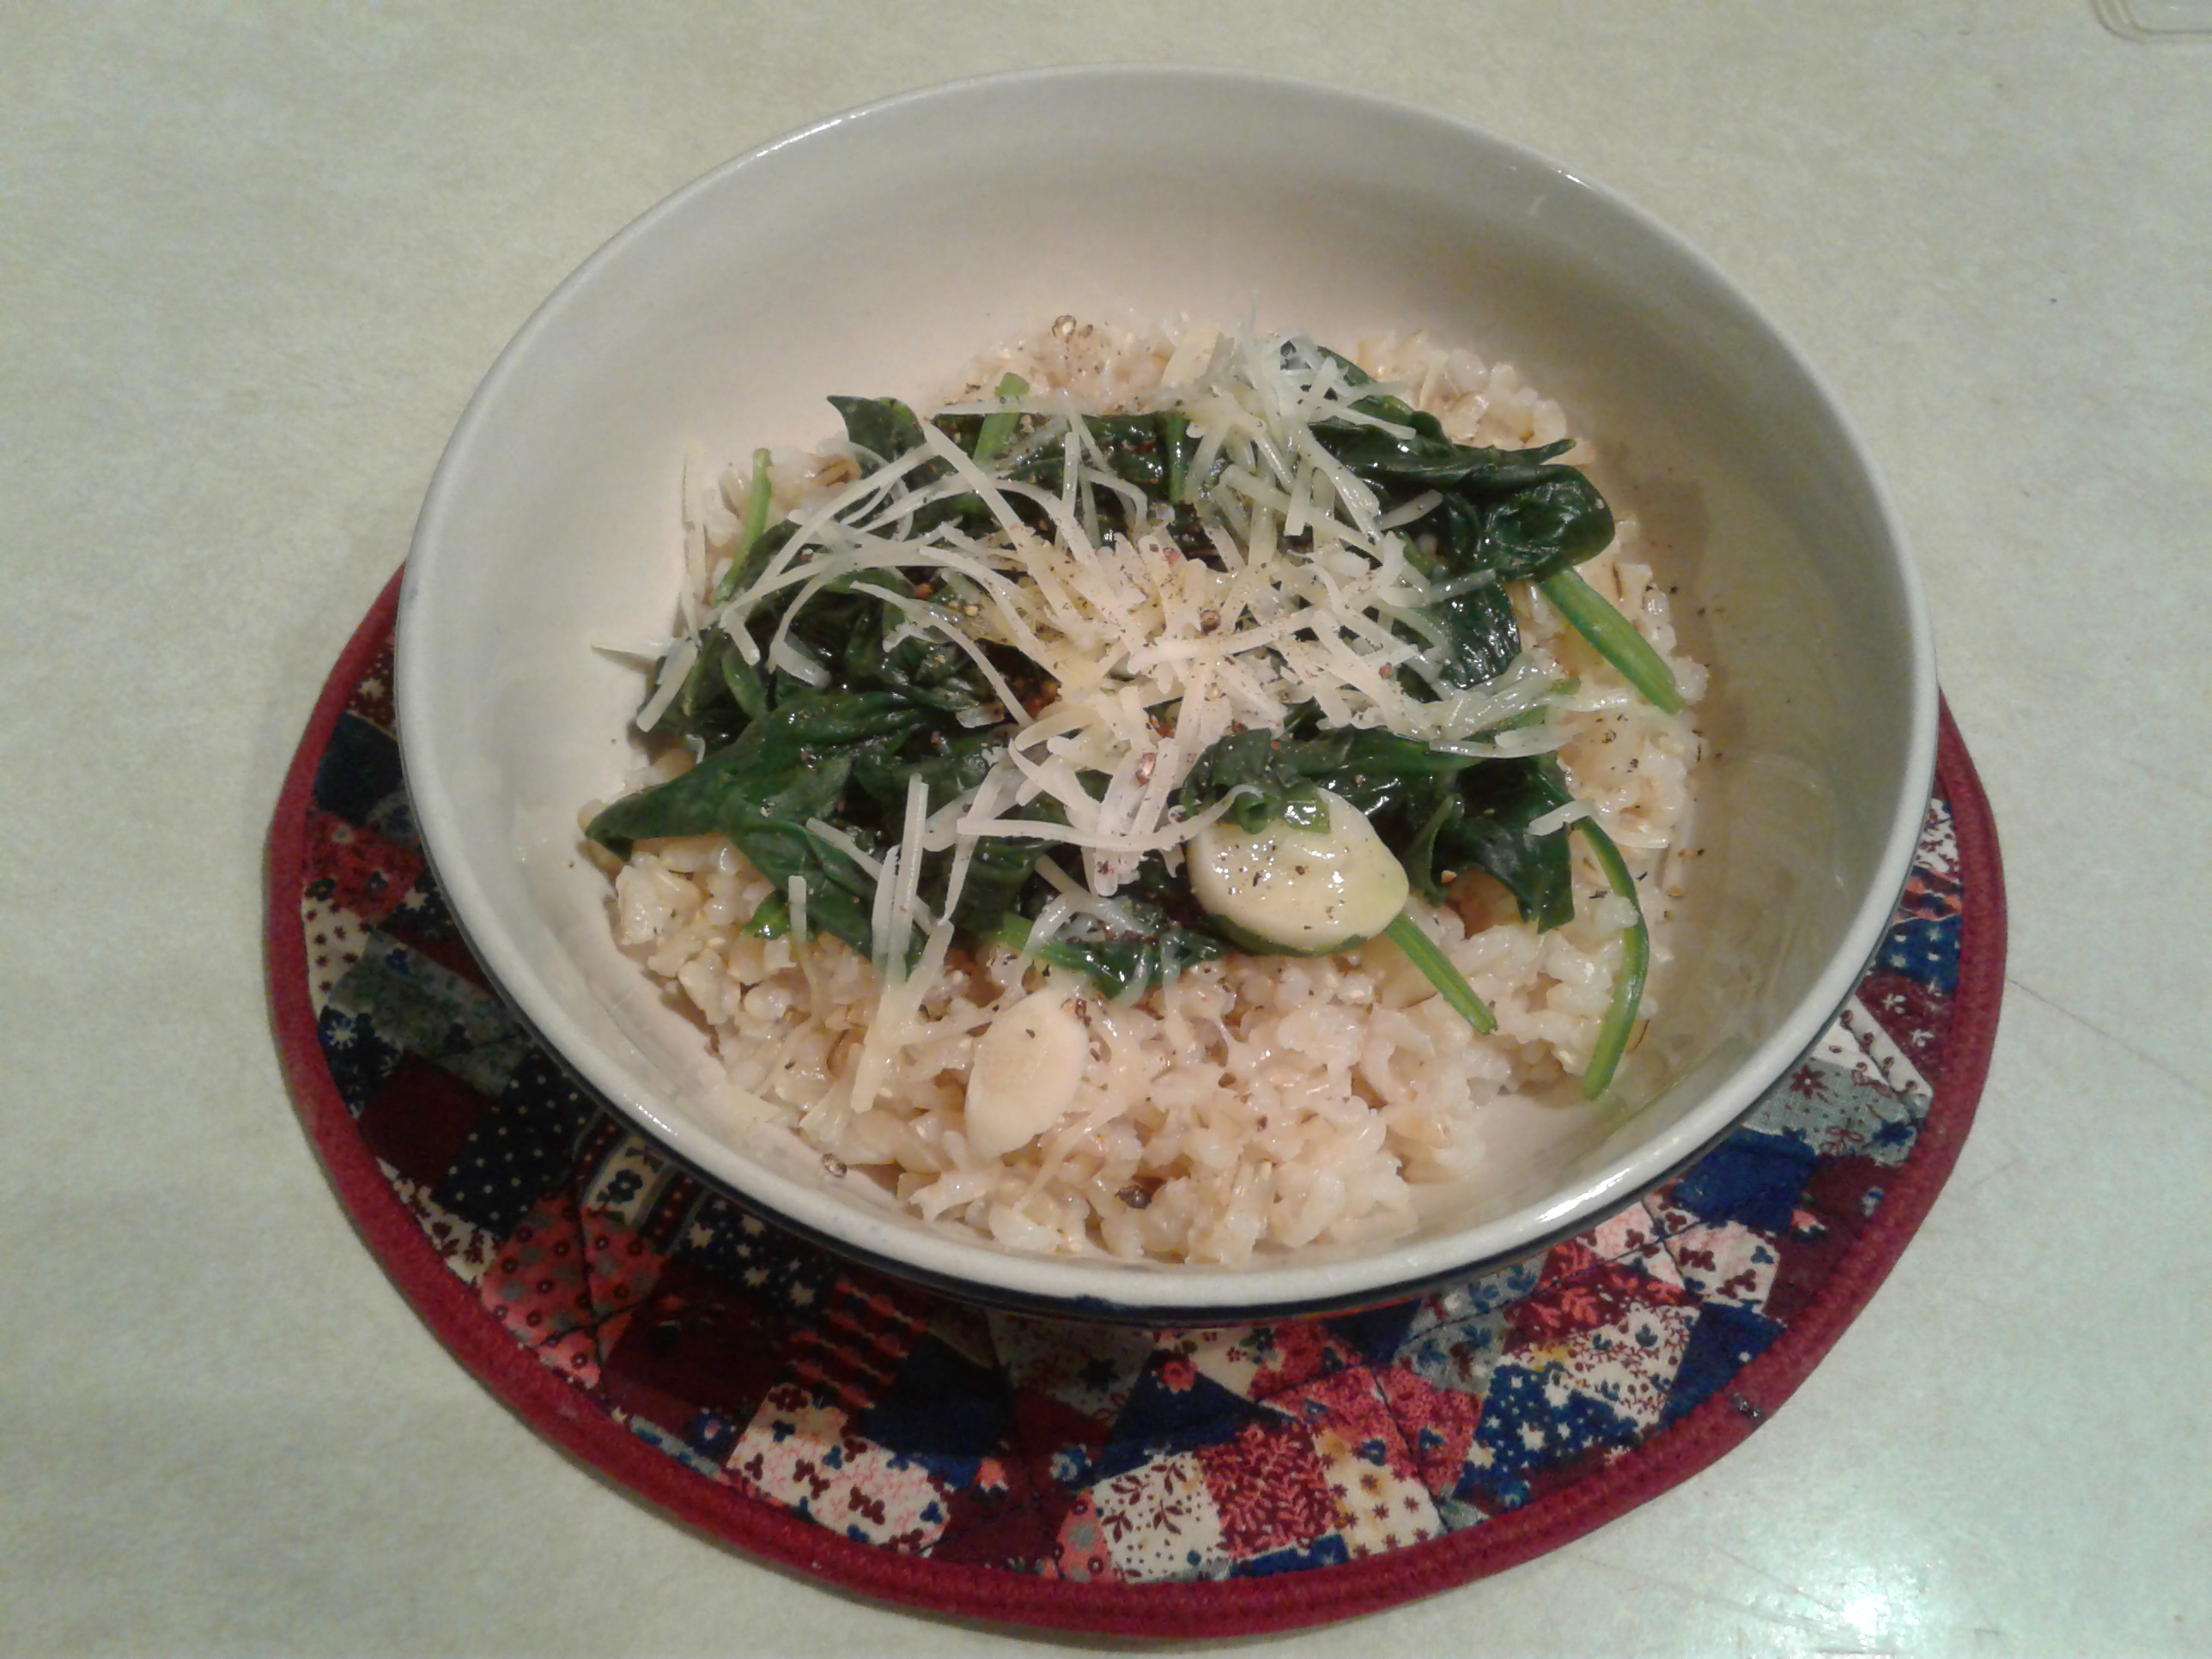 Bowl of brown rice and spinach, topped with parmesan